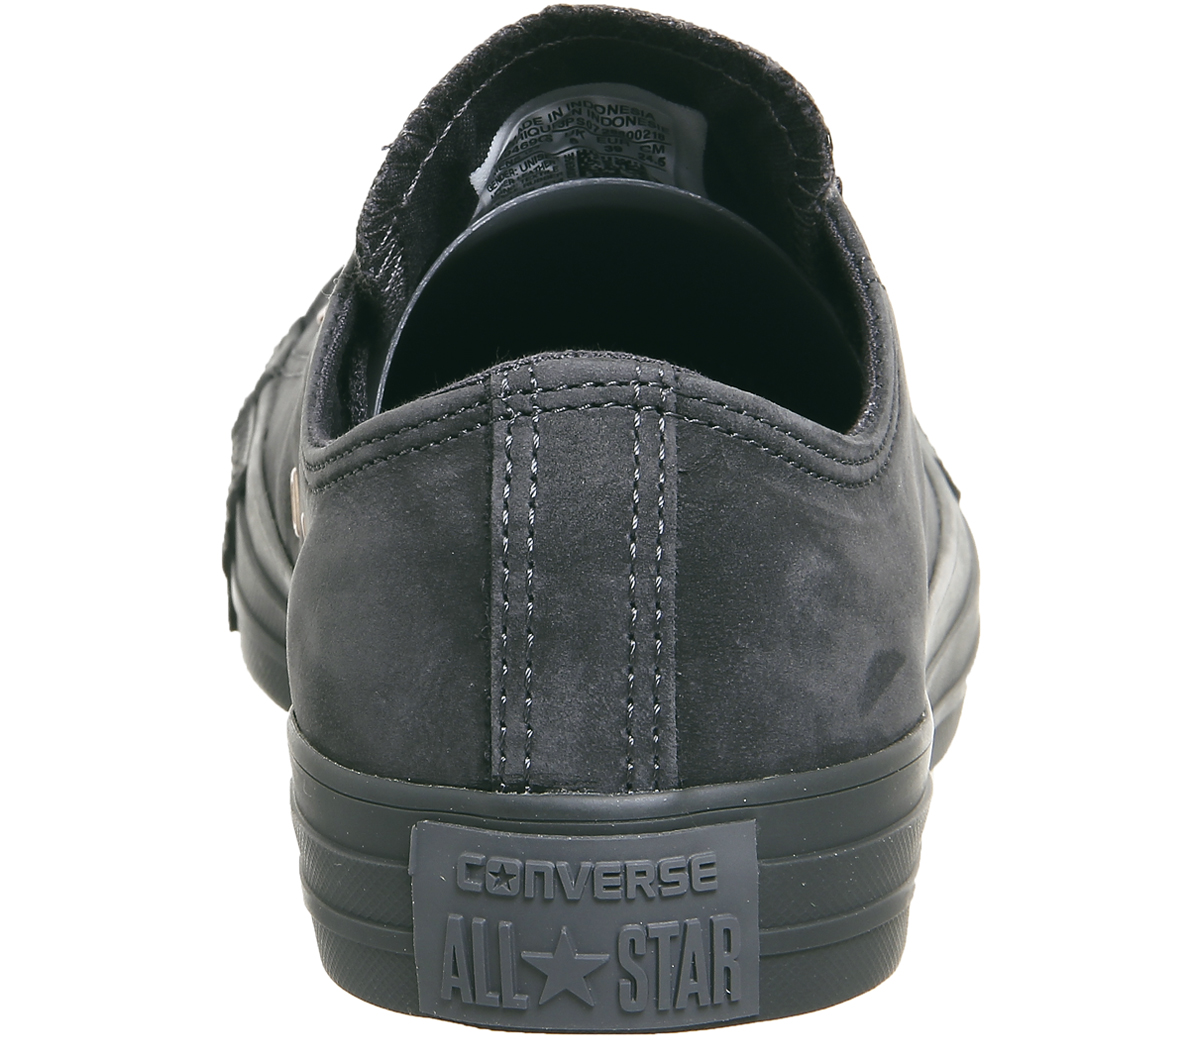 078479ce0feda2 Womens Converse All Star Low Leather Almost Black Rose Gold Trainers ...